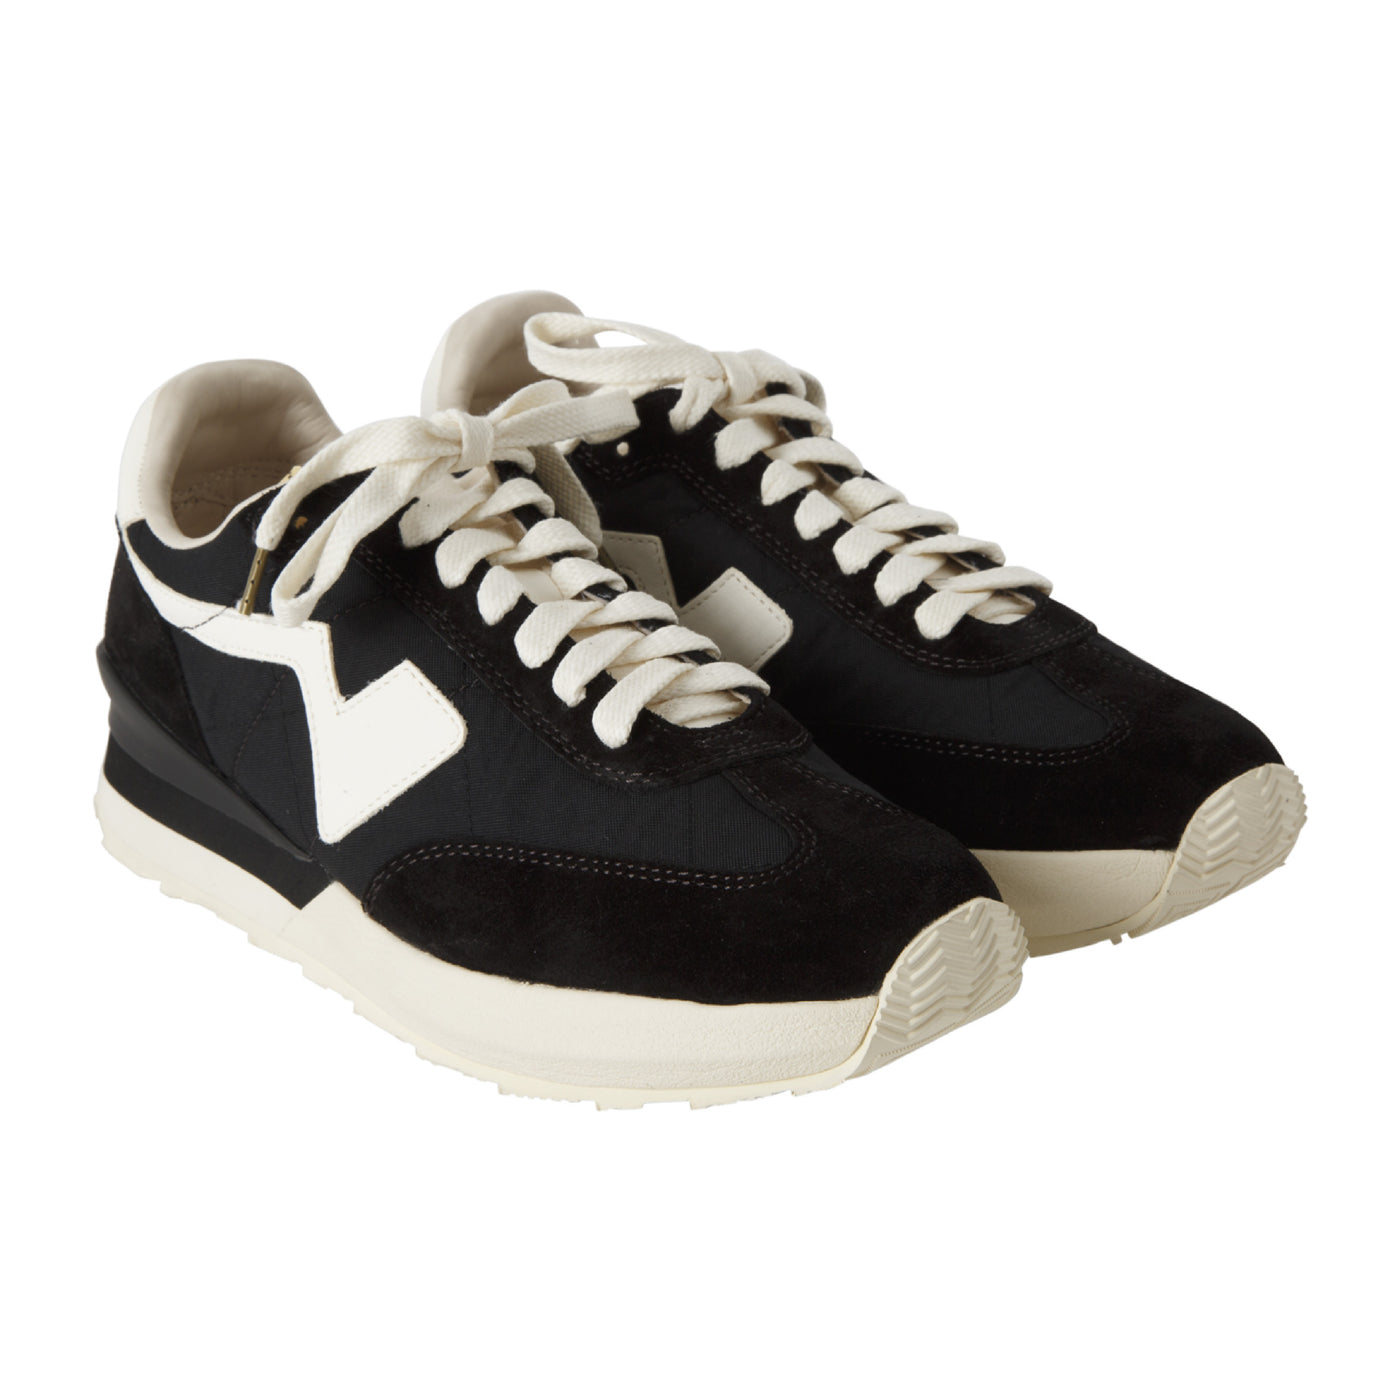 Load image into Gallery viewer, VISVIM FKT RUNNER SNEAKERS BLACK